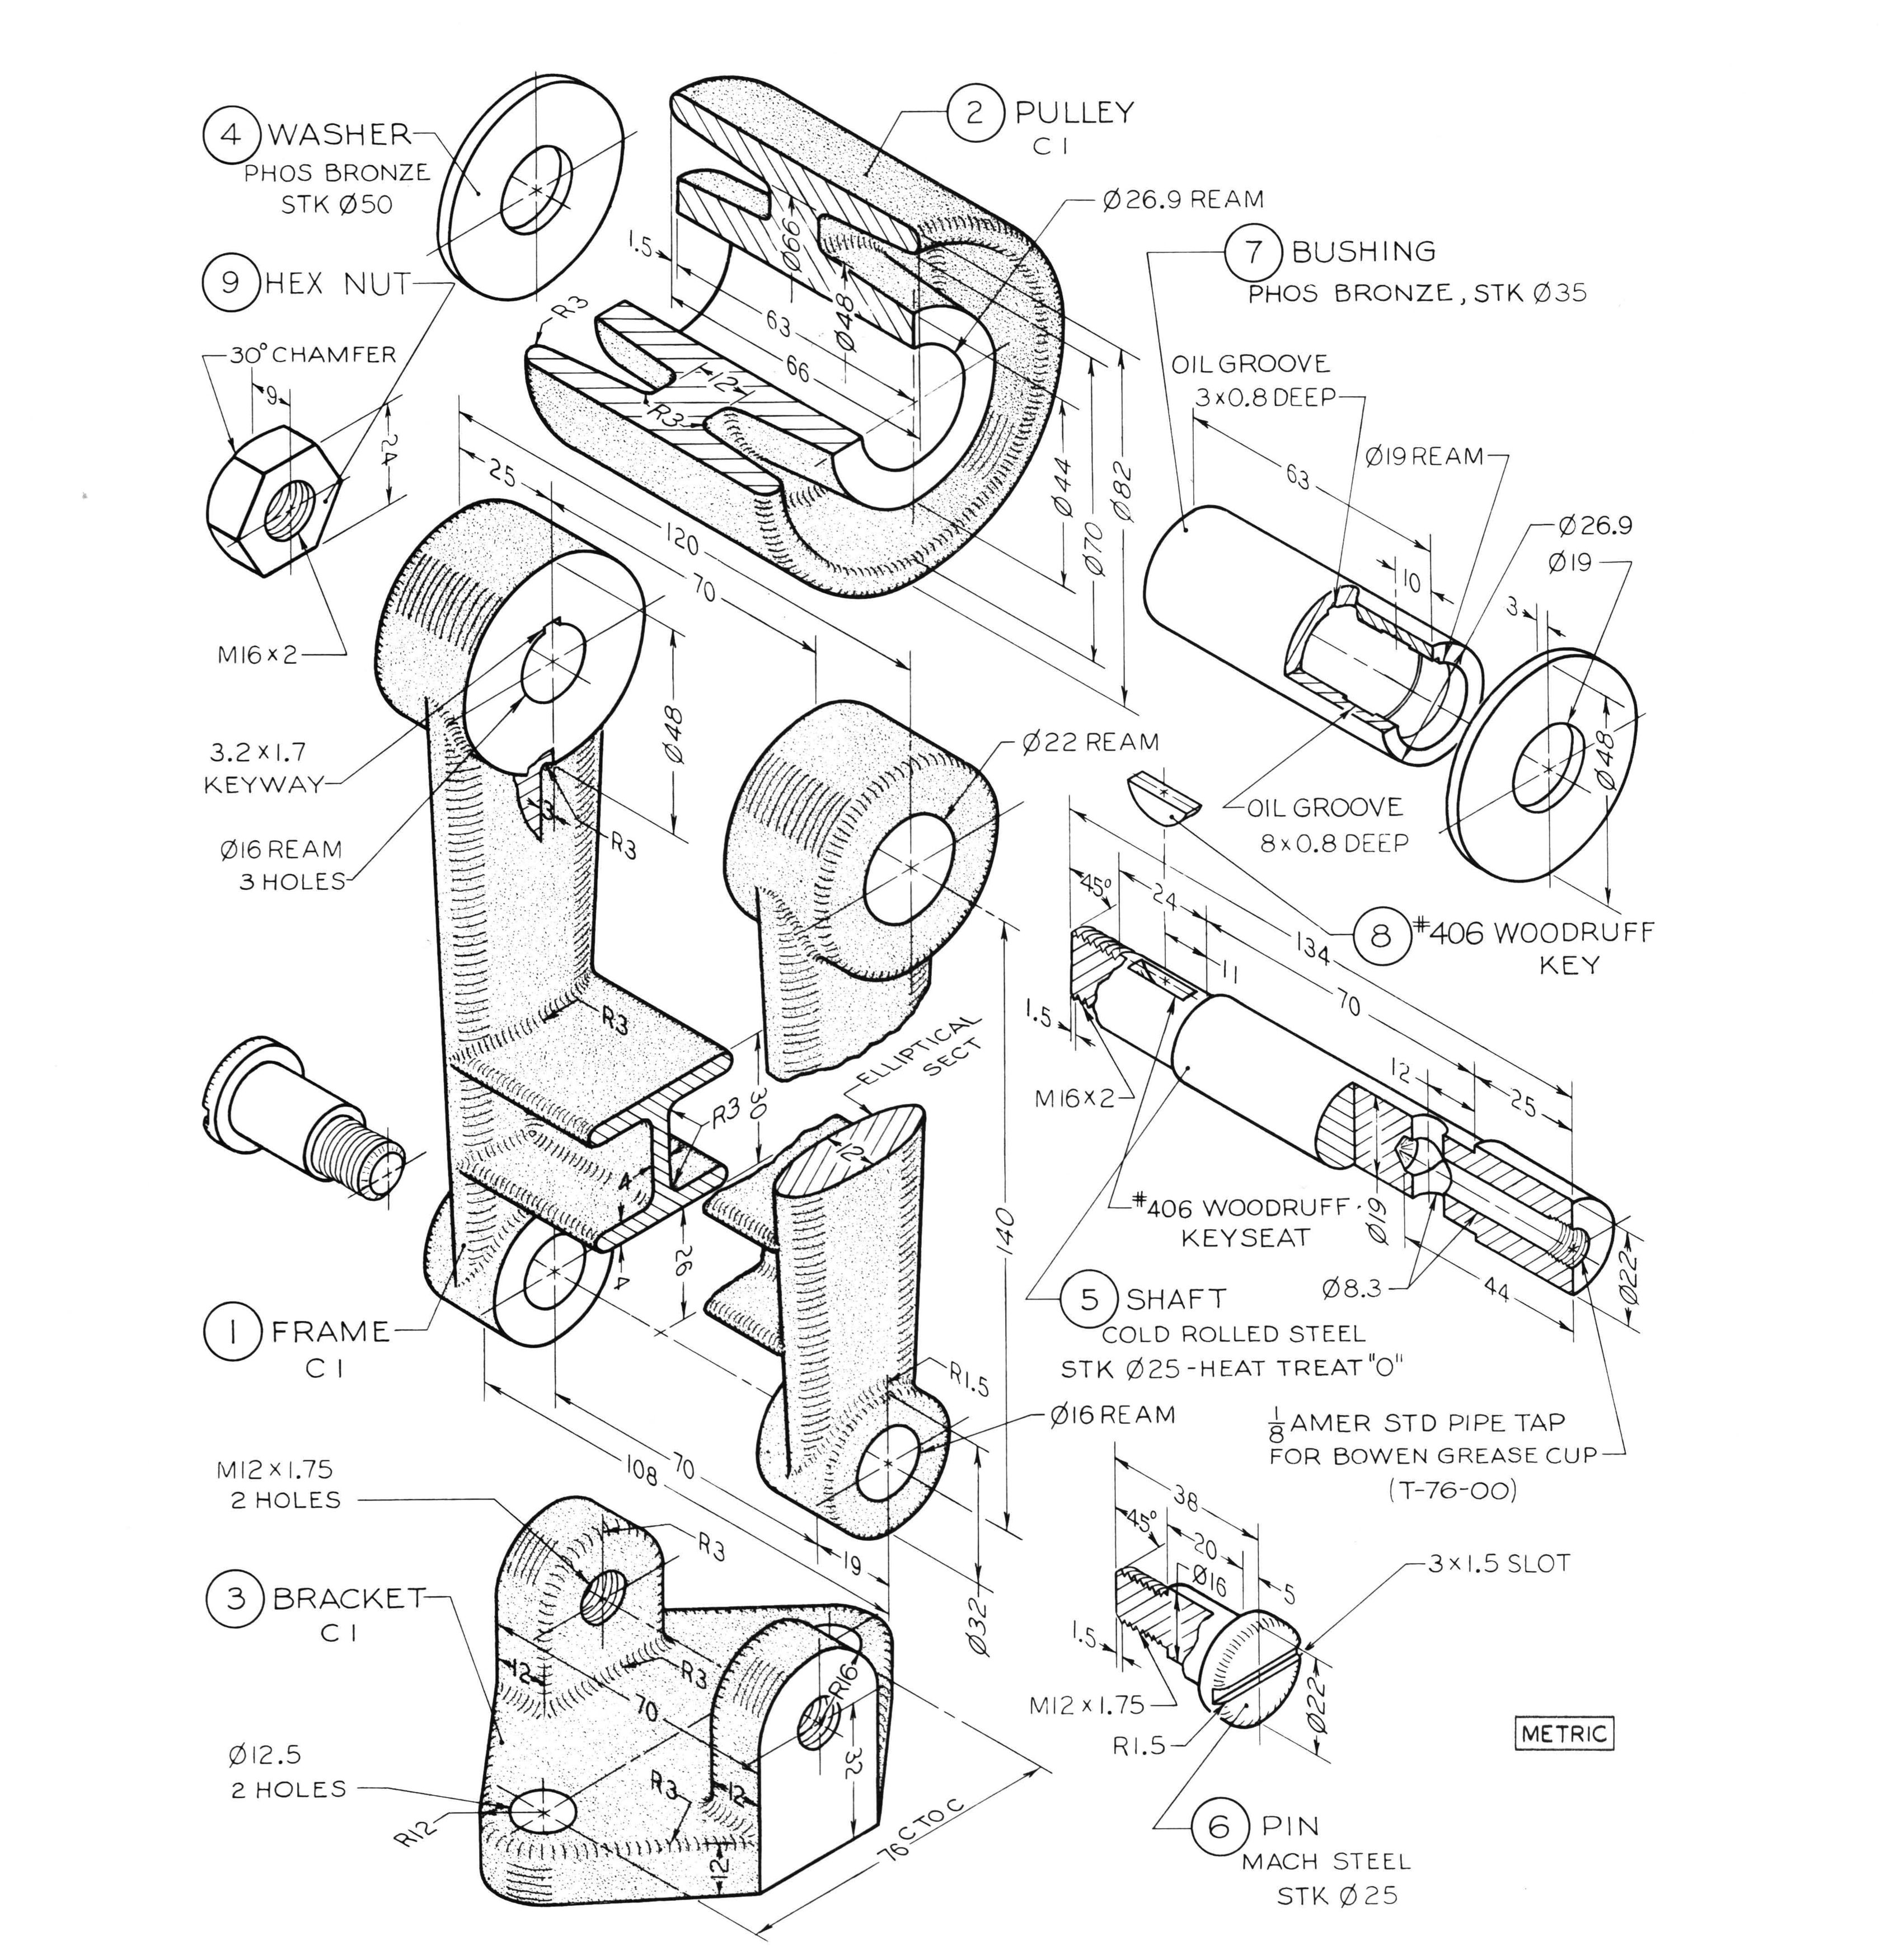 Sample Drawings for training|Autodesk Online Gallery